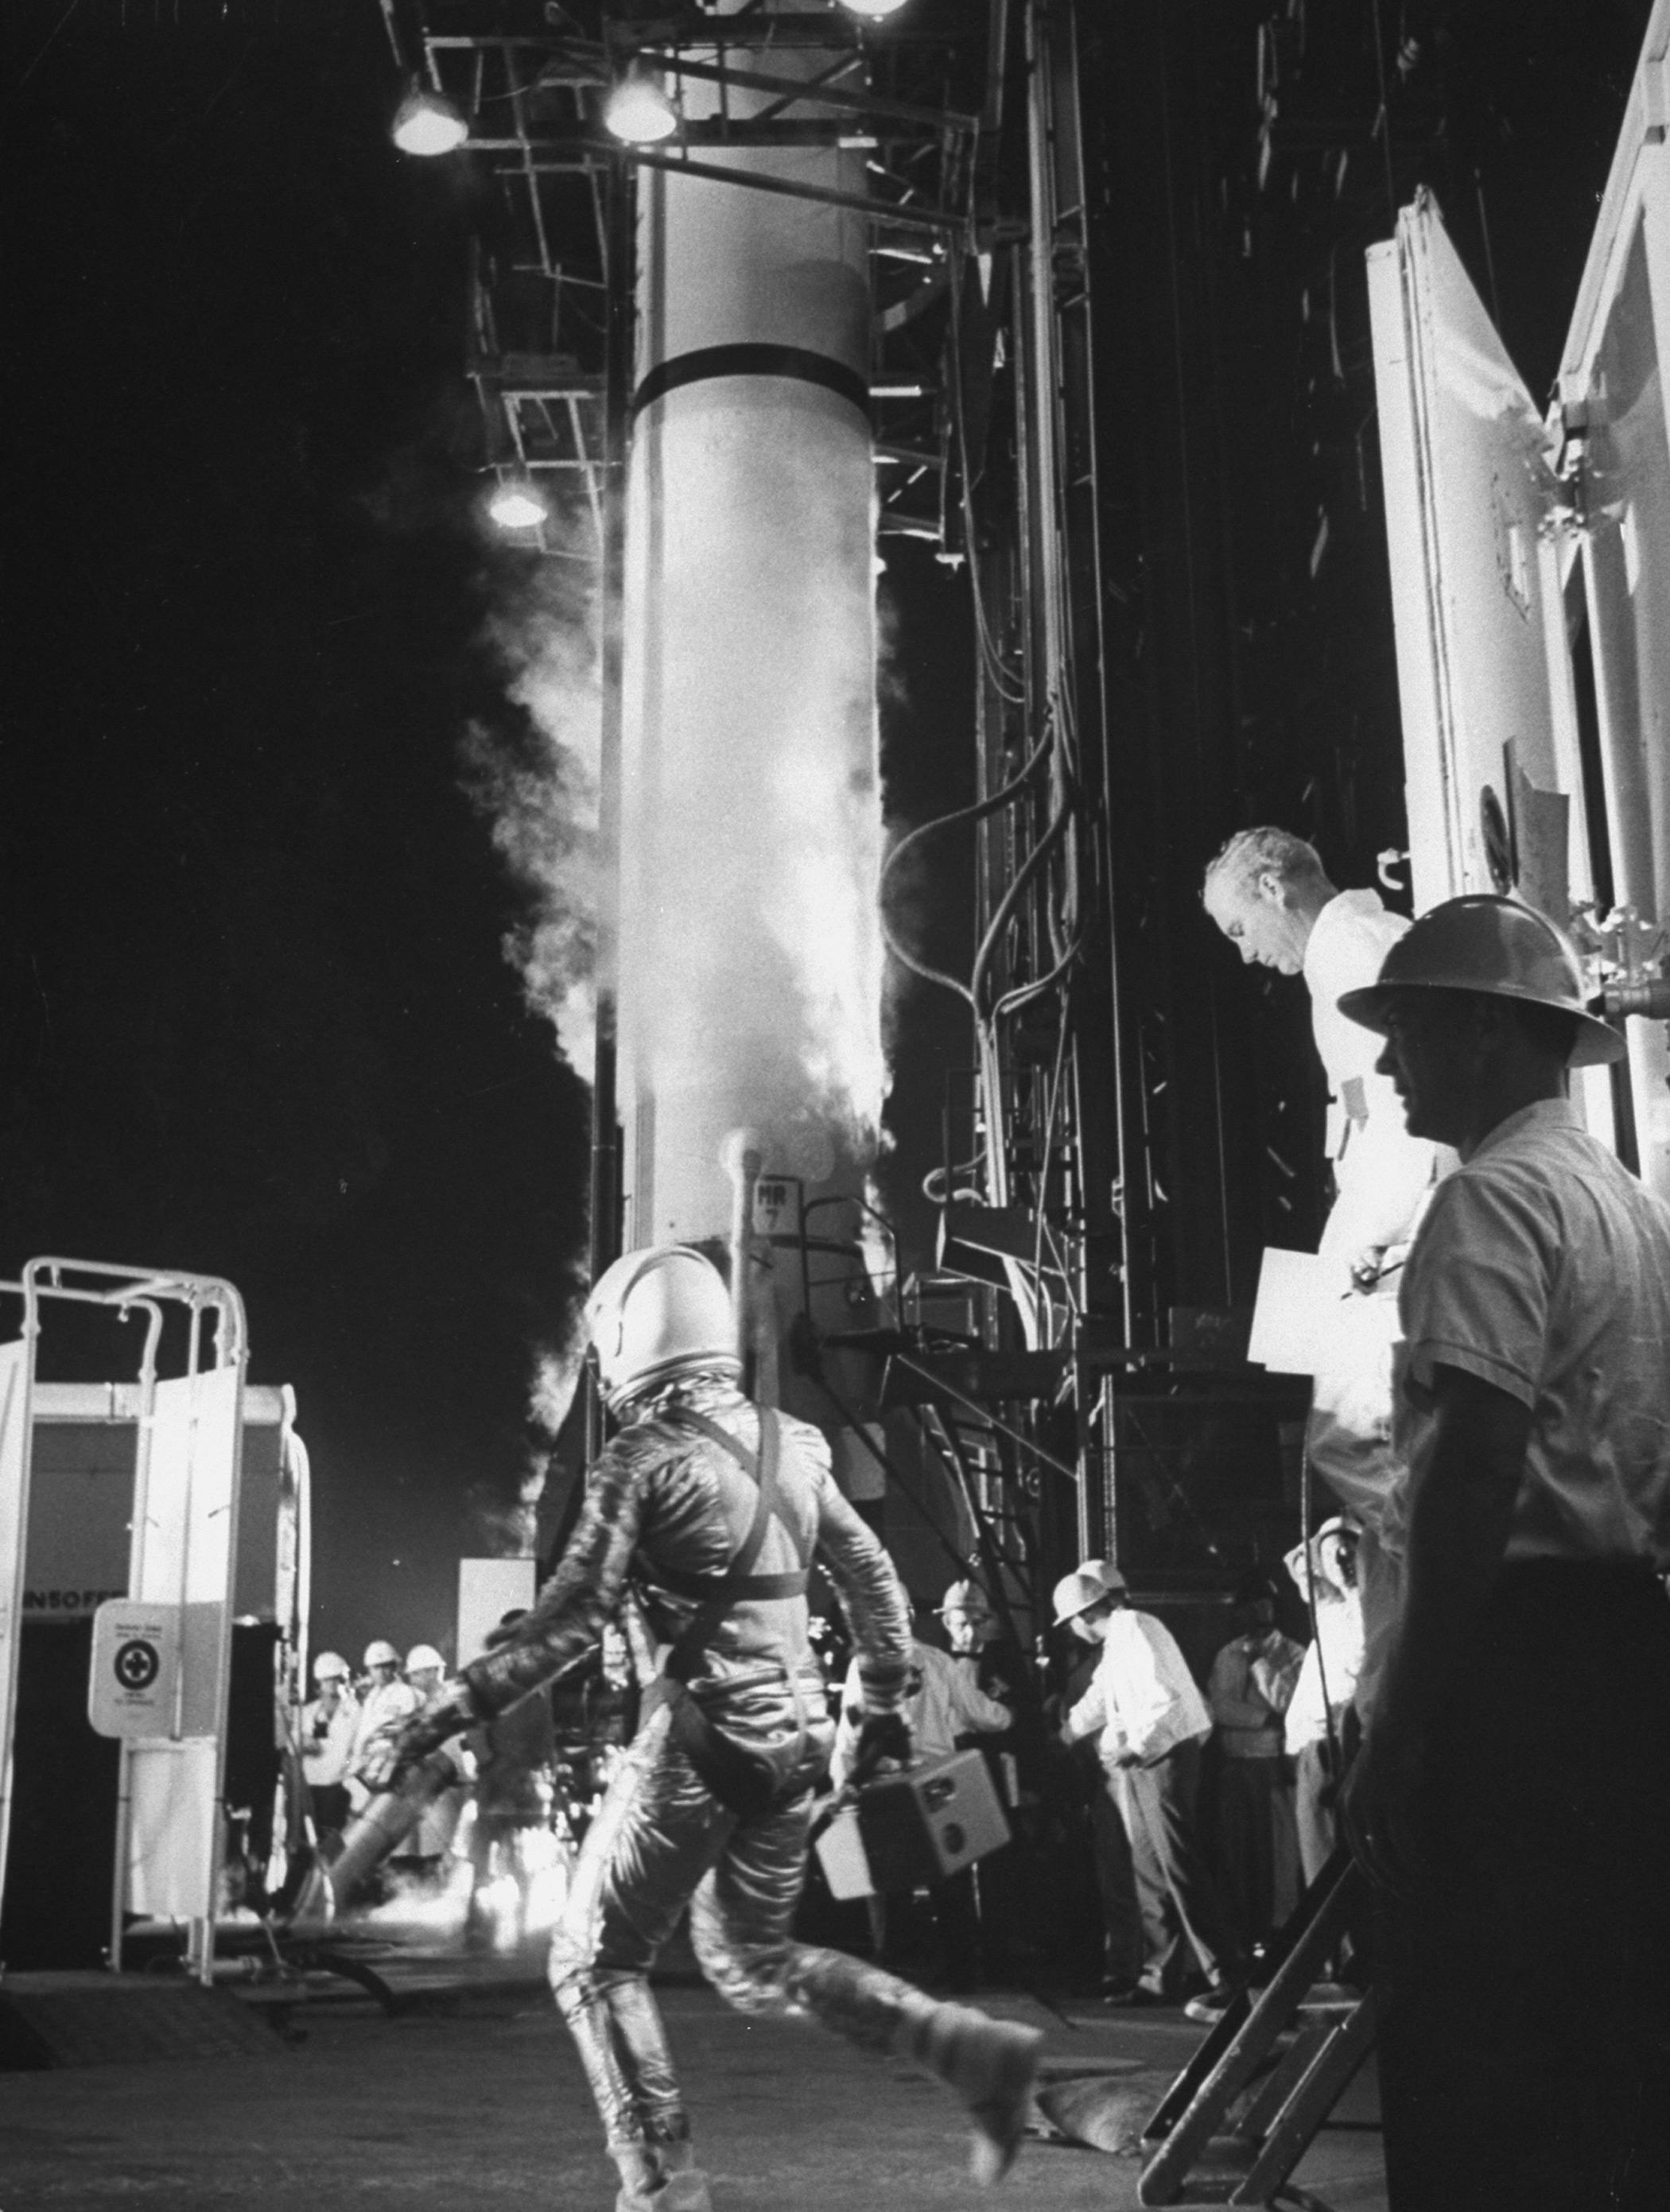 <b>Alan Shepard at the Launchpad, 1961</b>; Alan Shepard strides toward his vessel, Freedom 7, to be first American into space.